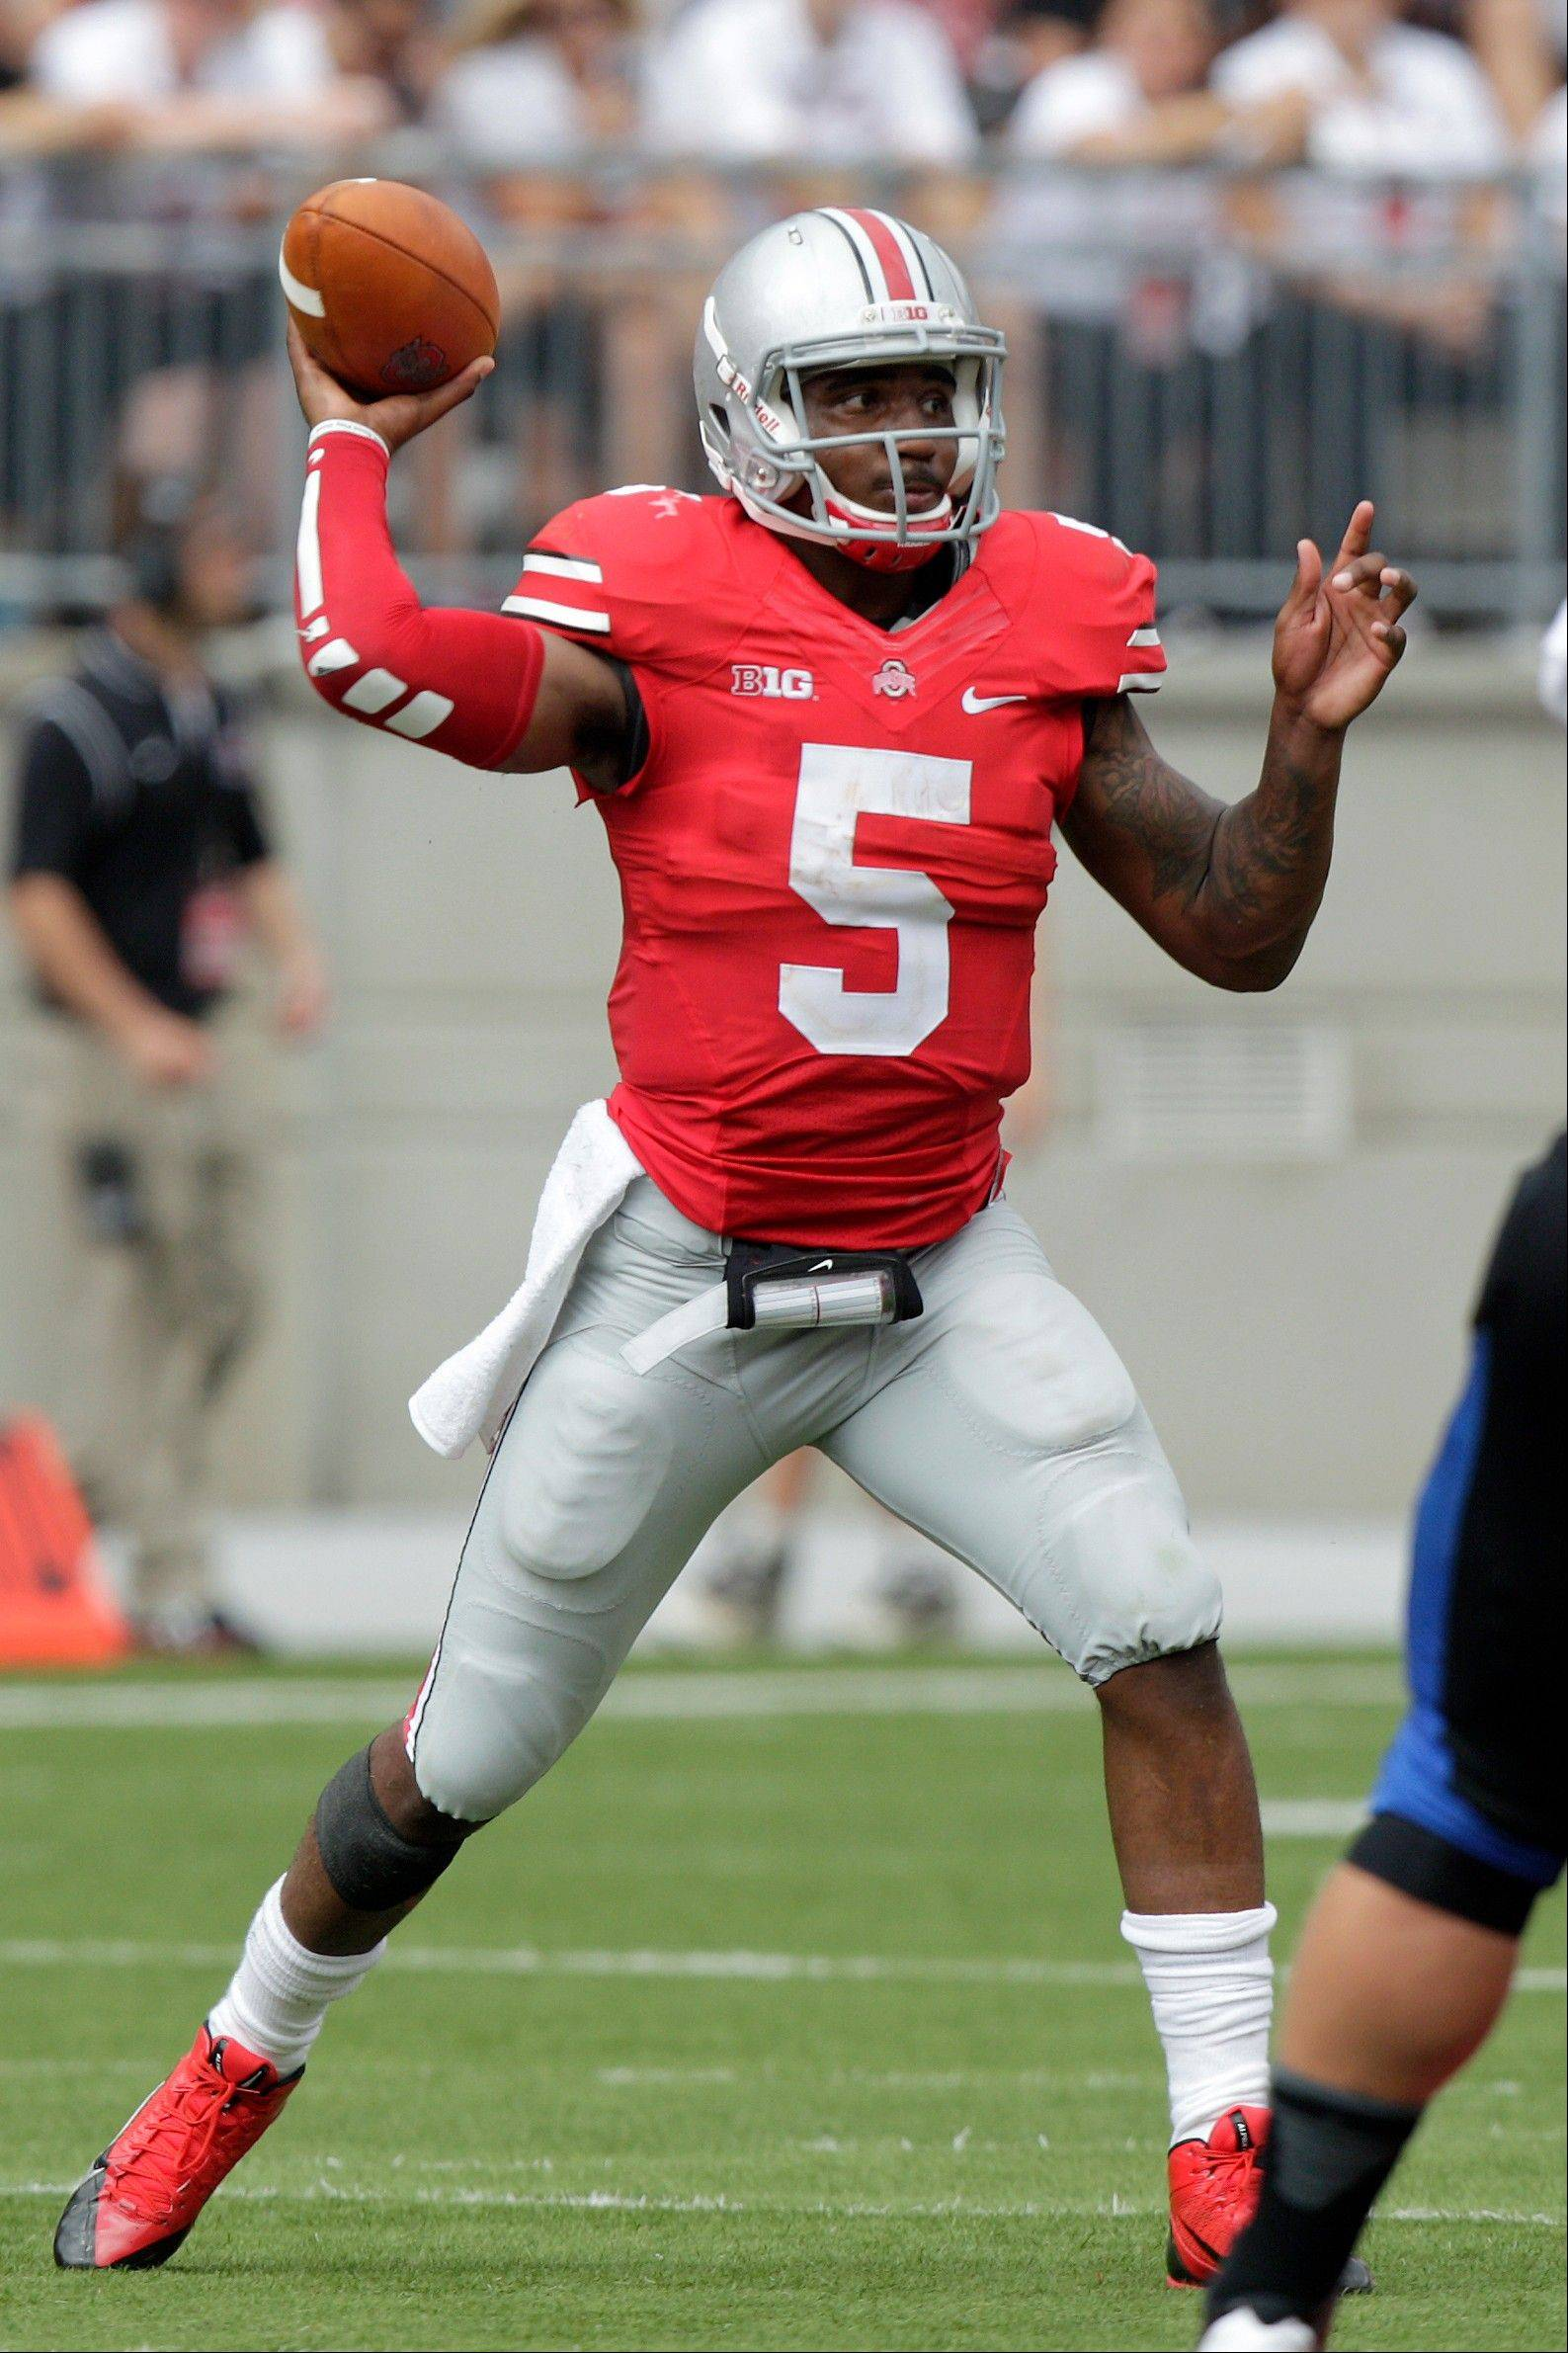 Braxton Miller was the Big Ten's offensive player of the year in 2012 while leading the Buckeyes to a 12-0 record. He went down early in the Buckeyes' second game this season.